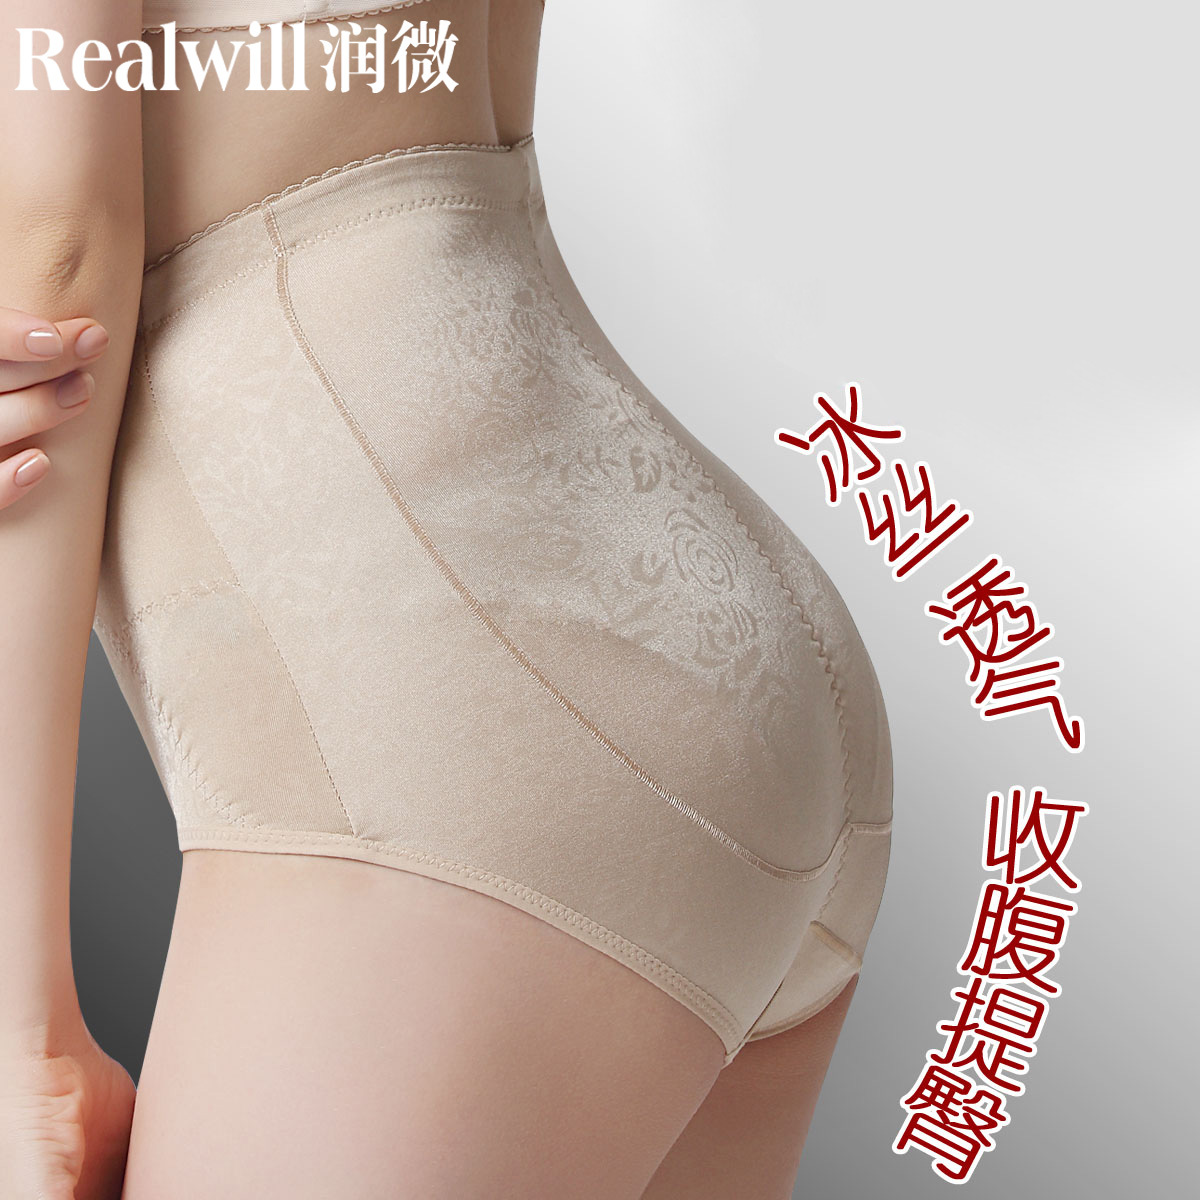 Realwill time viscose abdomen drawing butt-lifting high waist body shaping beauty care pants